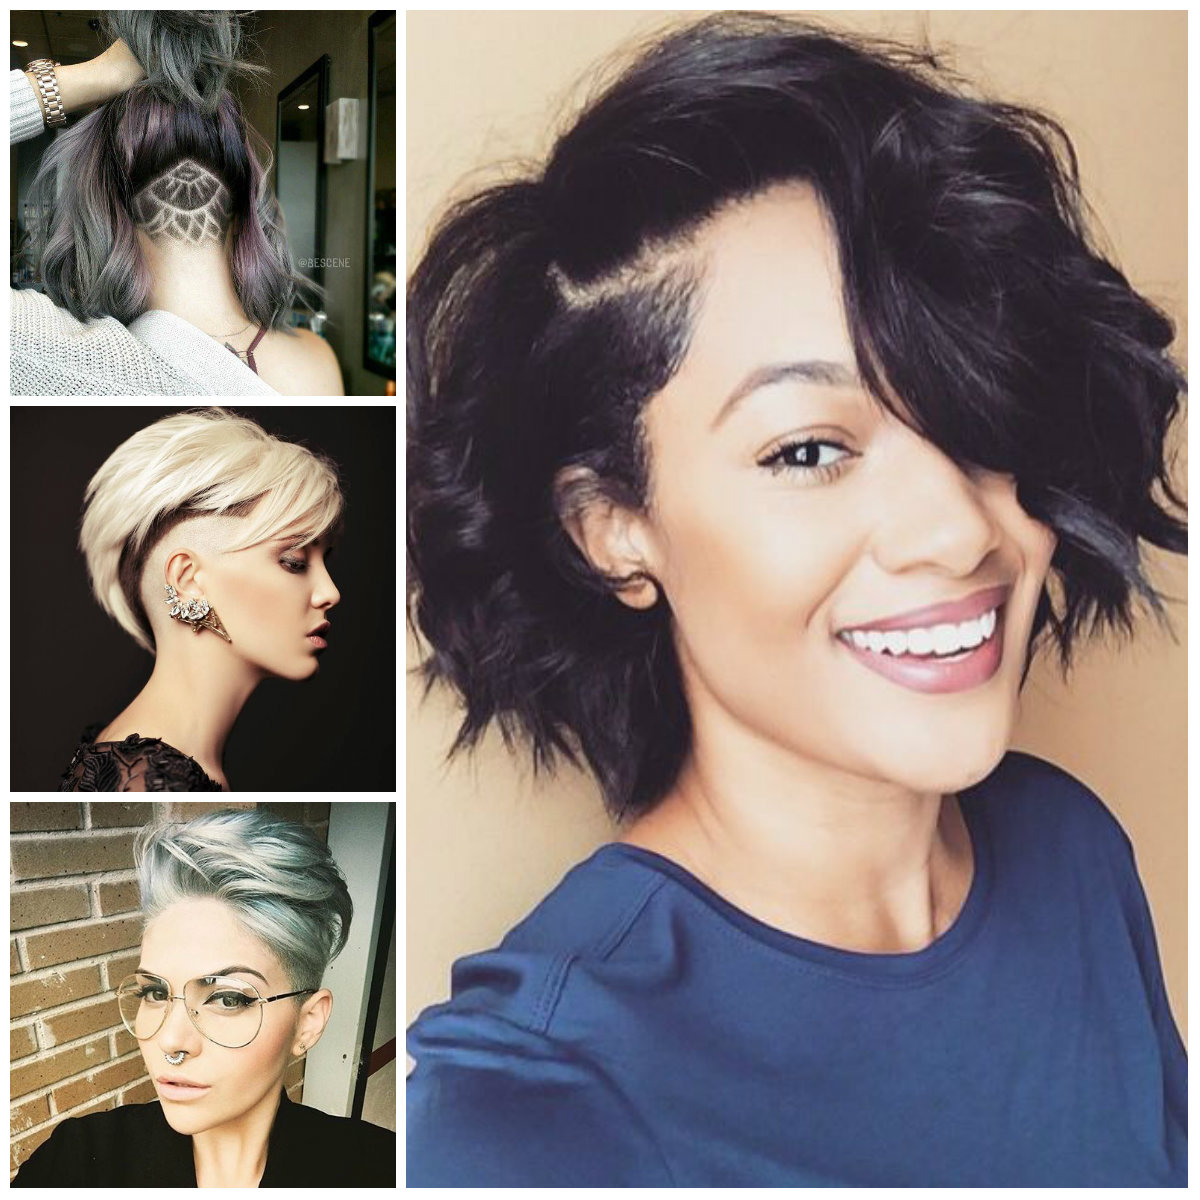 Sassy and Edgy Shaved Hairstyles for Females | 2019 Haircuts ...